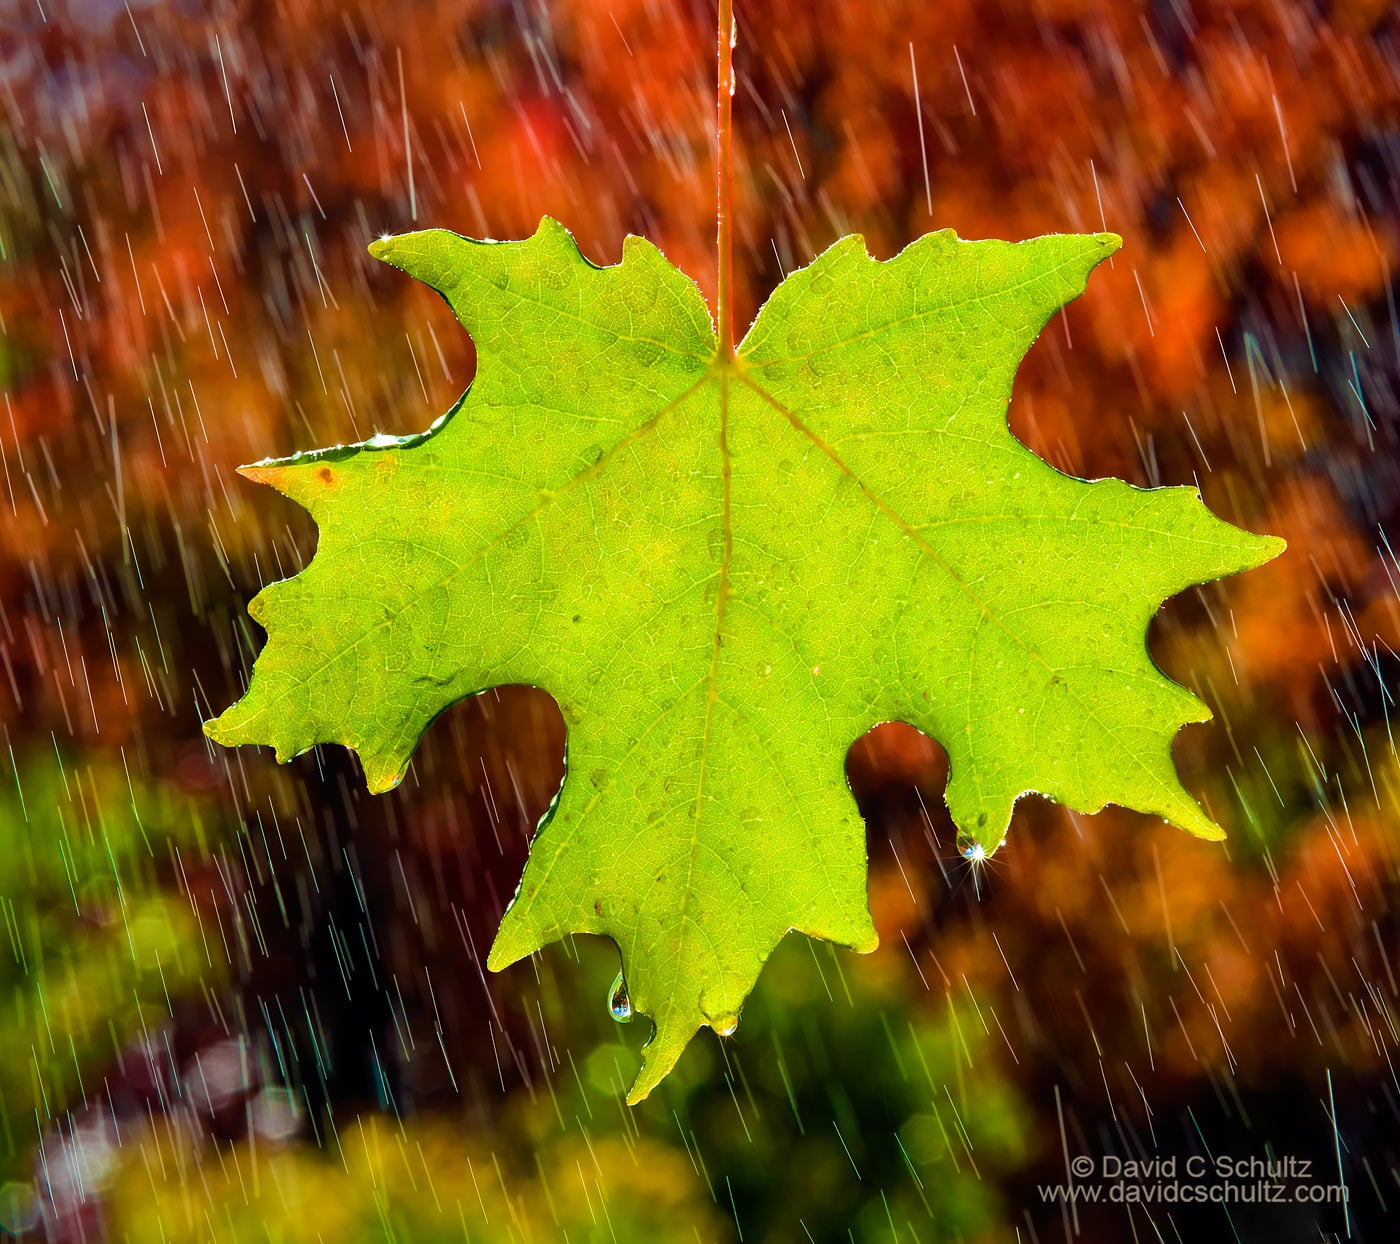 Back-lit maple leaf in the fall - Image #191-47